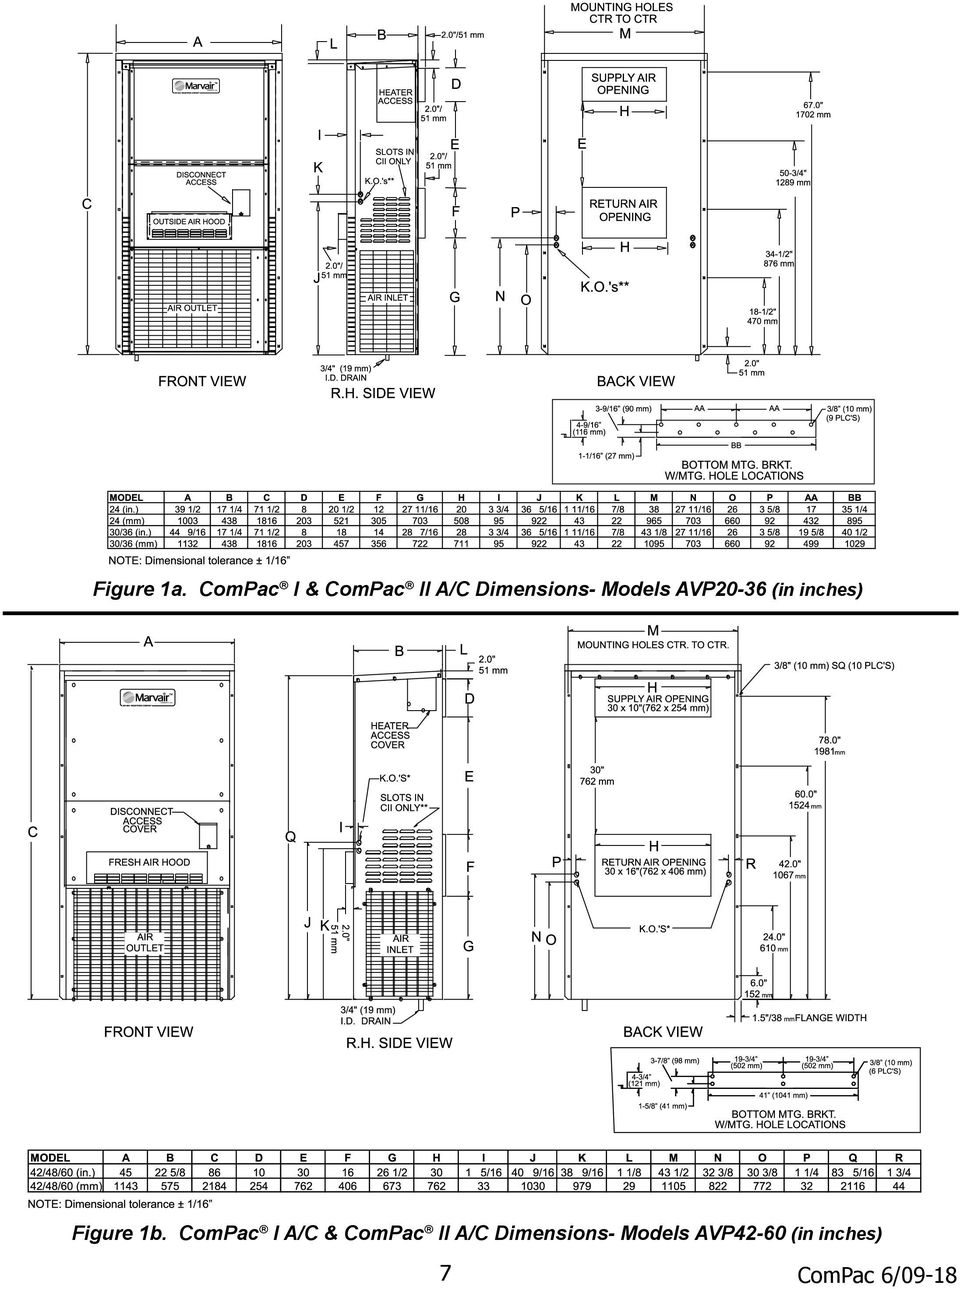 Compac I And Ii Air Conditioner Product Manual Pdf Marvair Conditioners Wiring Diagrams Models Avp20 36 In Inches Figure 1b